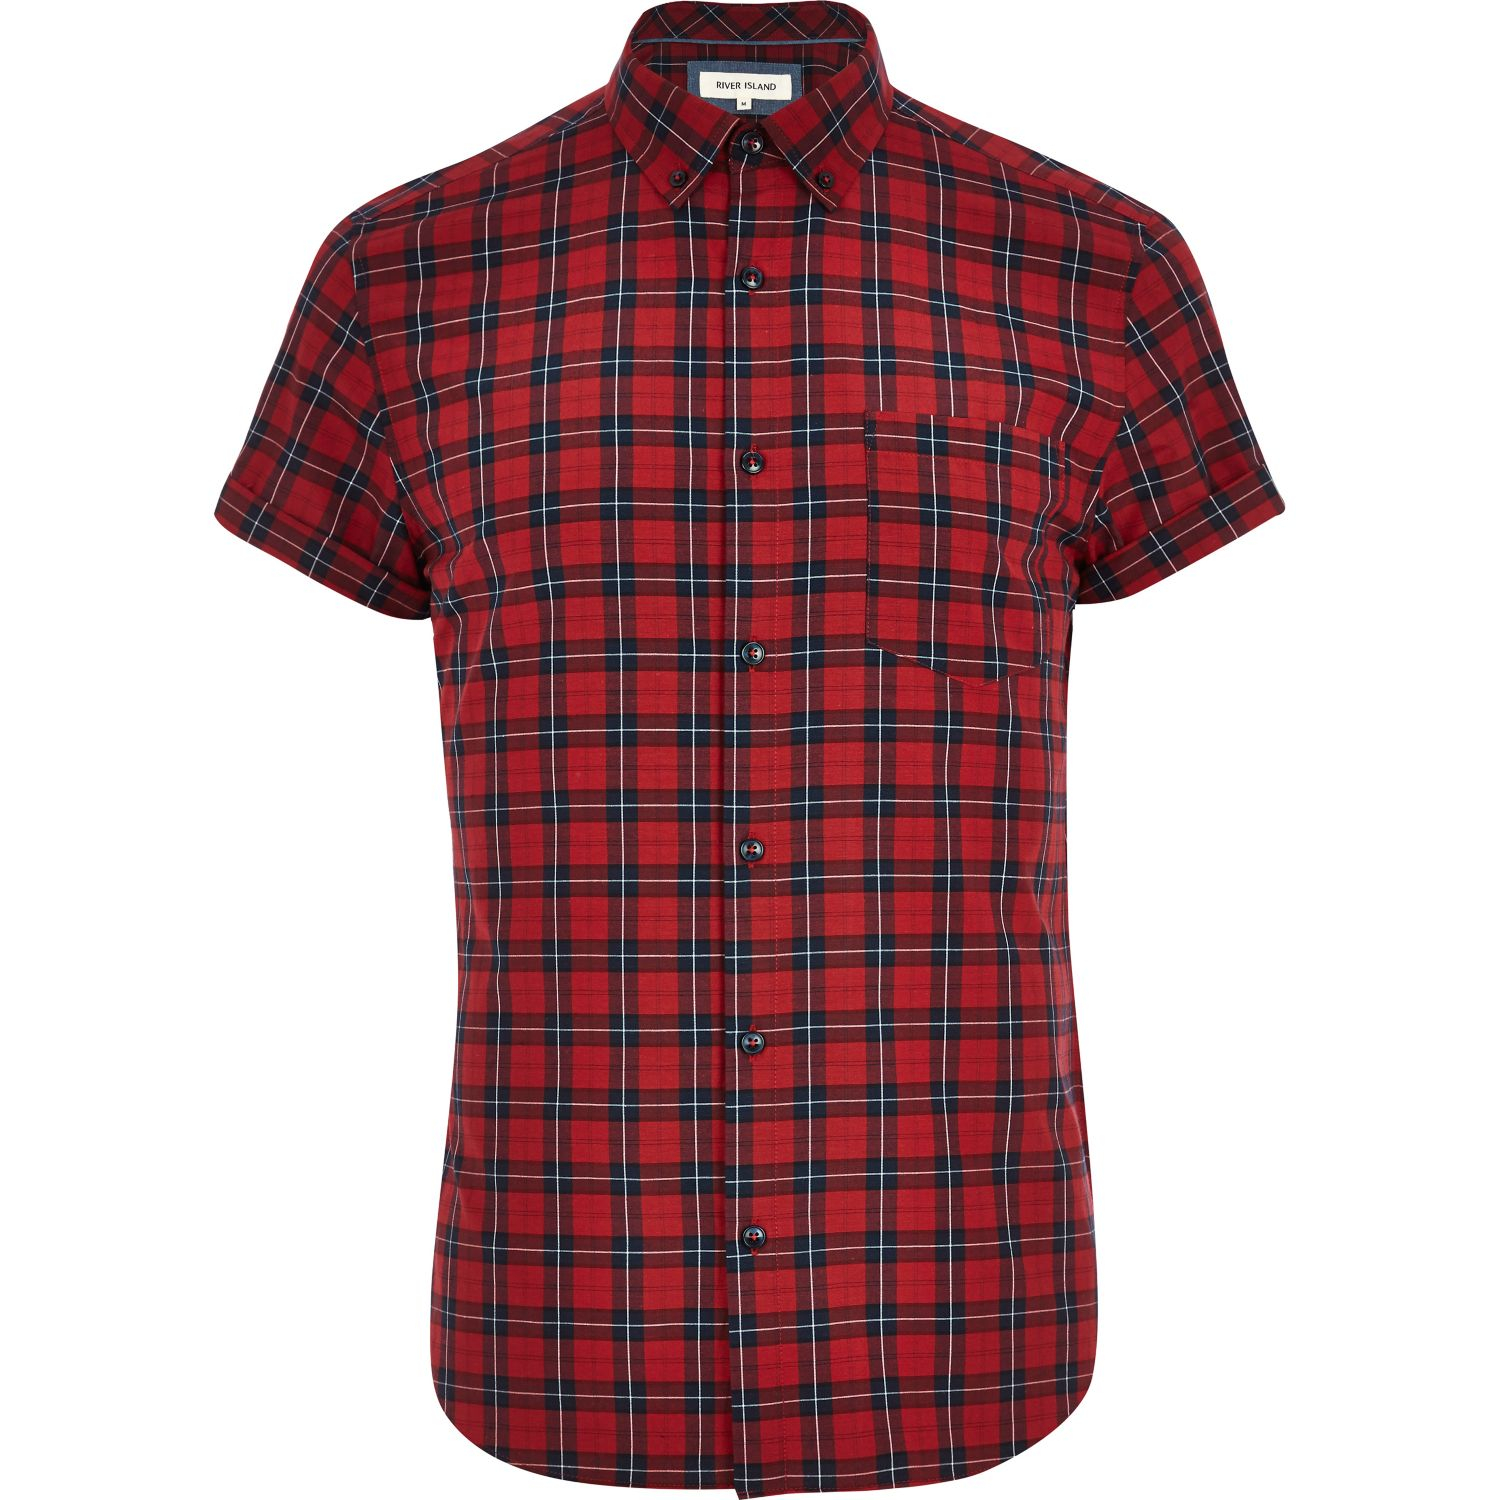 River island red plaid short sleeve shirt in red for men Short sleeve plaid shirts